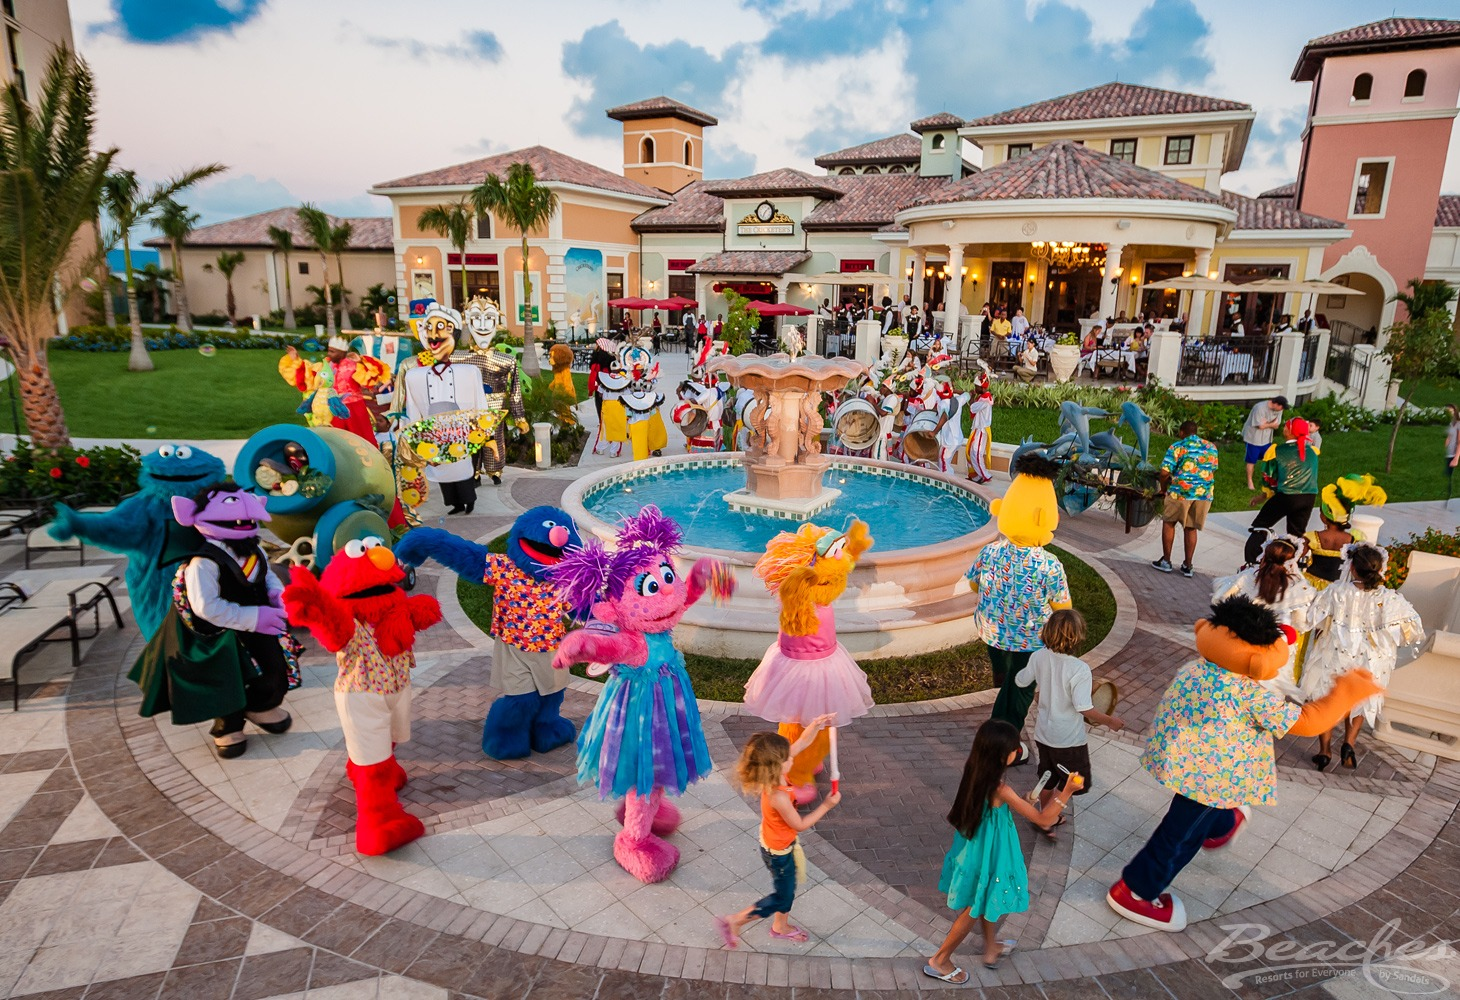 Family Vacations    Family reunions? Girls Trips? All inclusive getaway for a enjoyable break?  There is some much fun to be had across three properties. The best waterparks, beaches, kids camps, Sesame Street character breakfasts, Sesame Street character parades and fun for all.